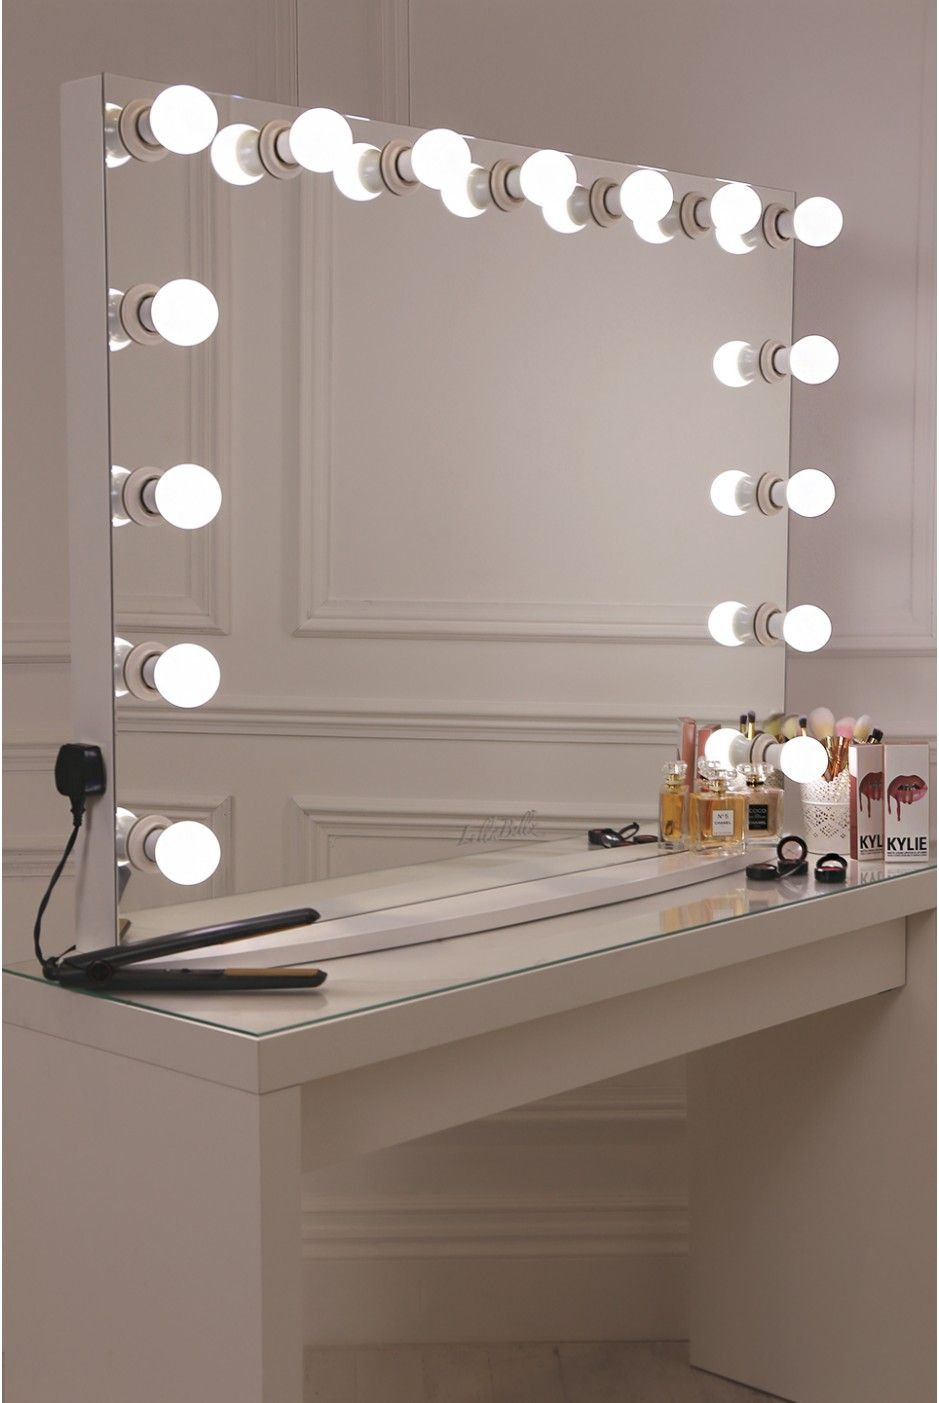 Vanity Mirror Lights Diy : DIY Vanity Mirror With Lights for Bathroom and Makeup Station Vanities, Diy vanity and Bedrooms